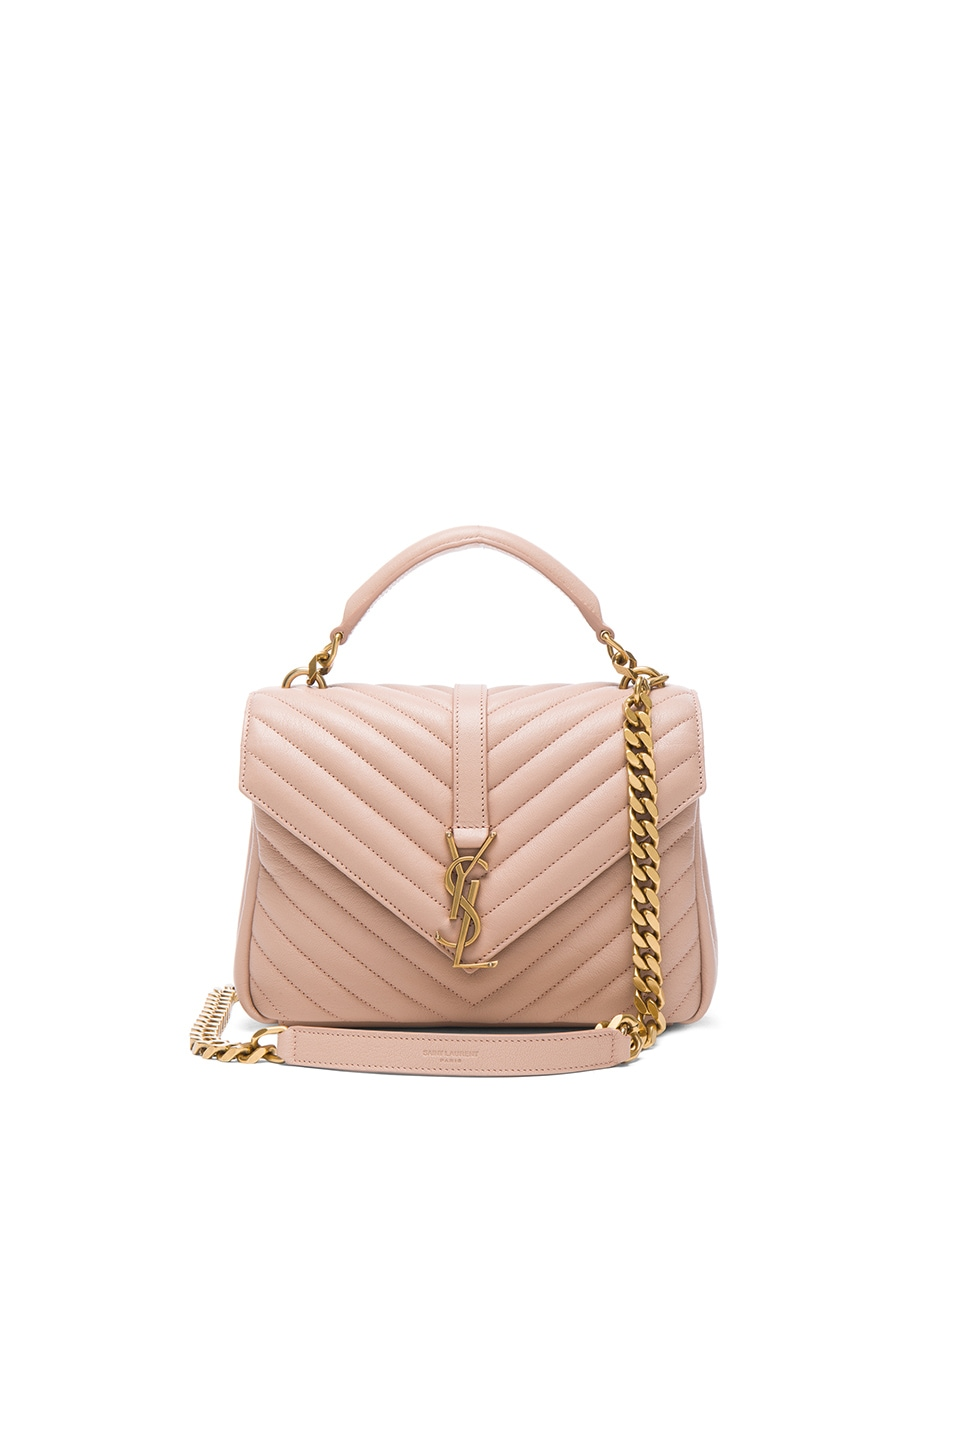 Image 1 of Saint Laurent Medium Monogramme College Bag in Nude Rose